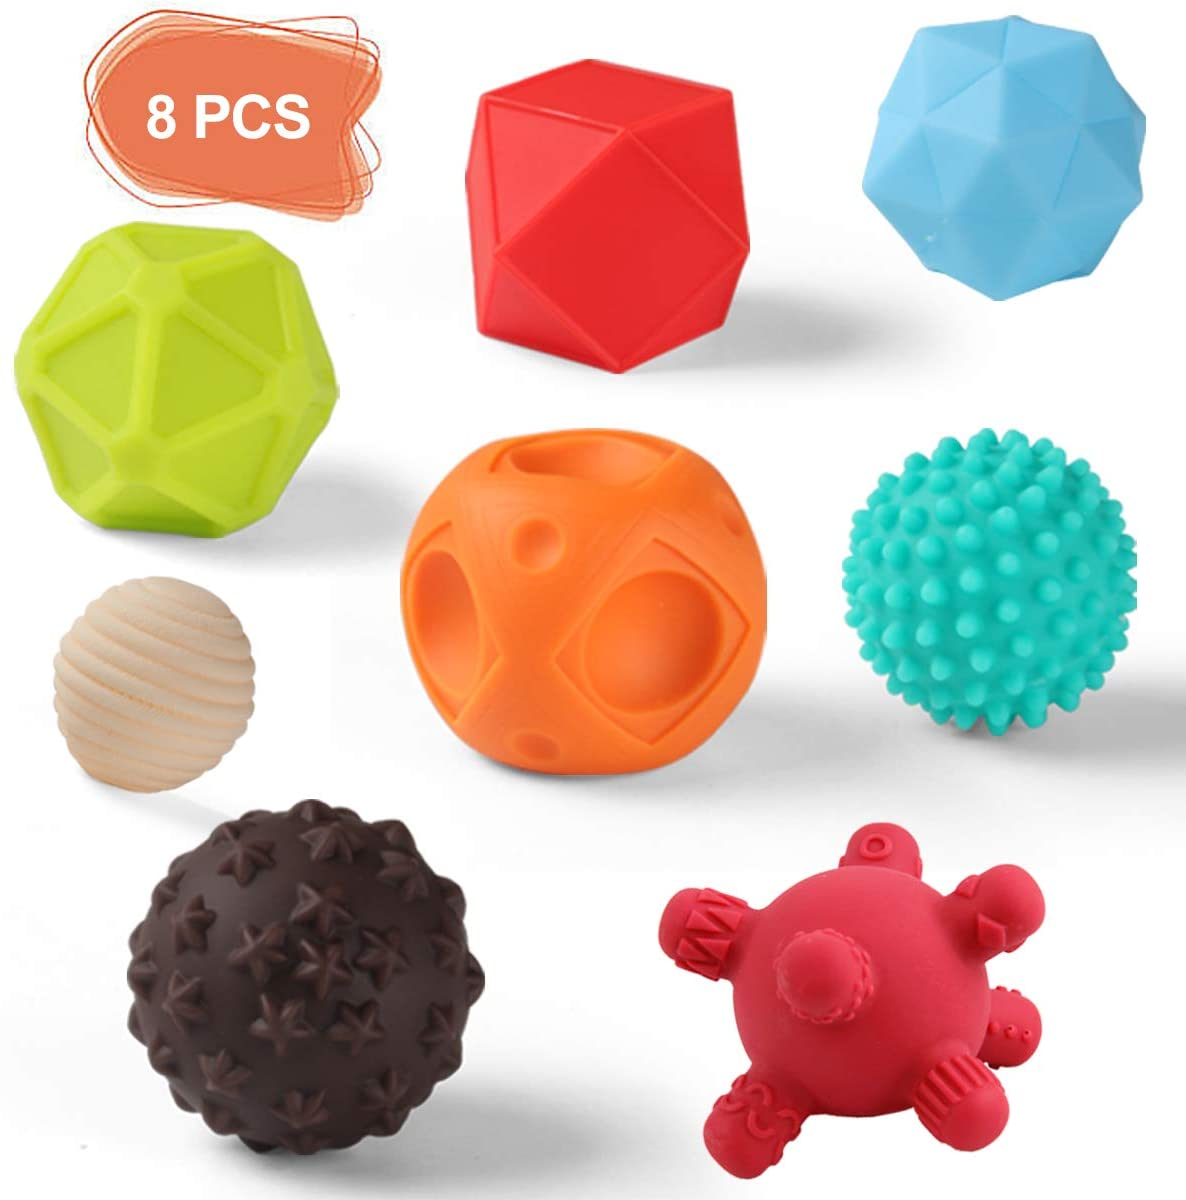 NUOEY Baby Textured Sensory Ball Set Soft Squeeze Massage Balls with Bright Color and Multi Shape,Learning Early Educational Toys for 6+ Months Toddlers Boys and Girls(8PCS)